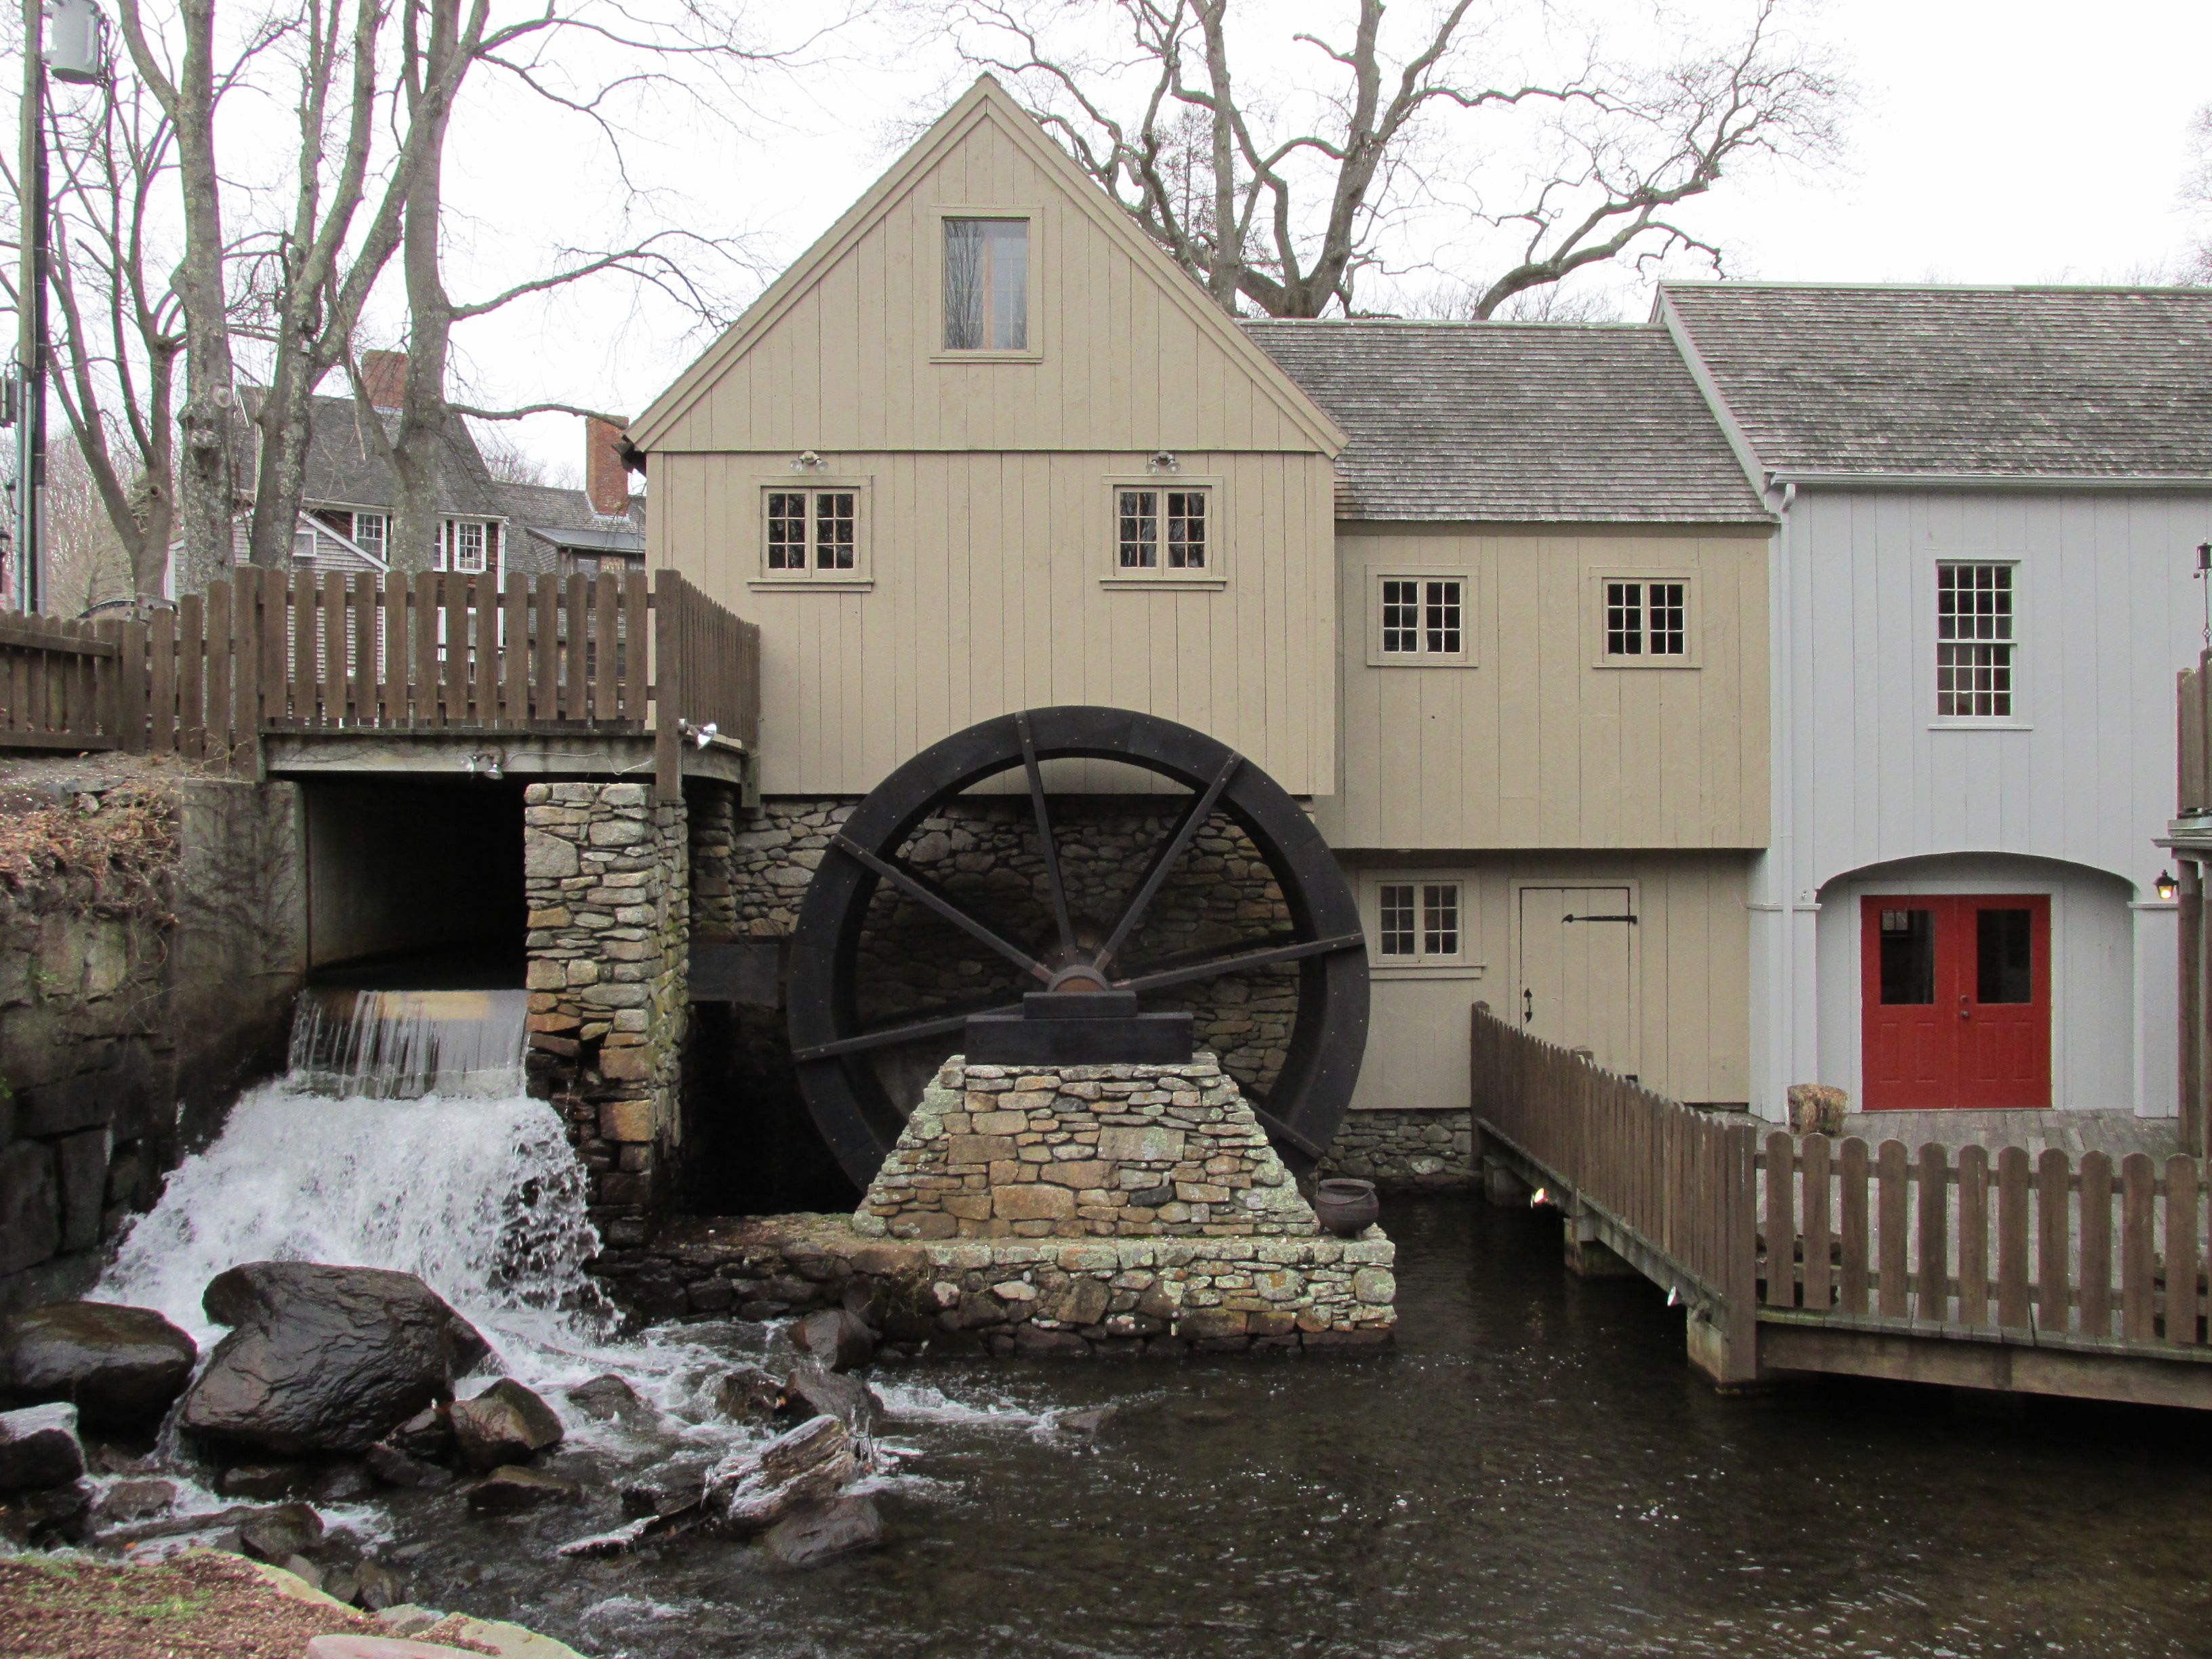 Pin on grist mill's